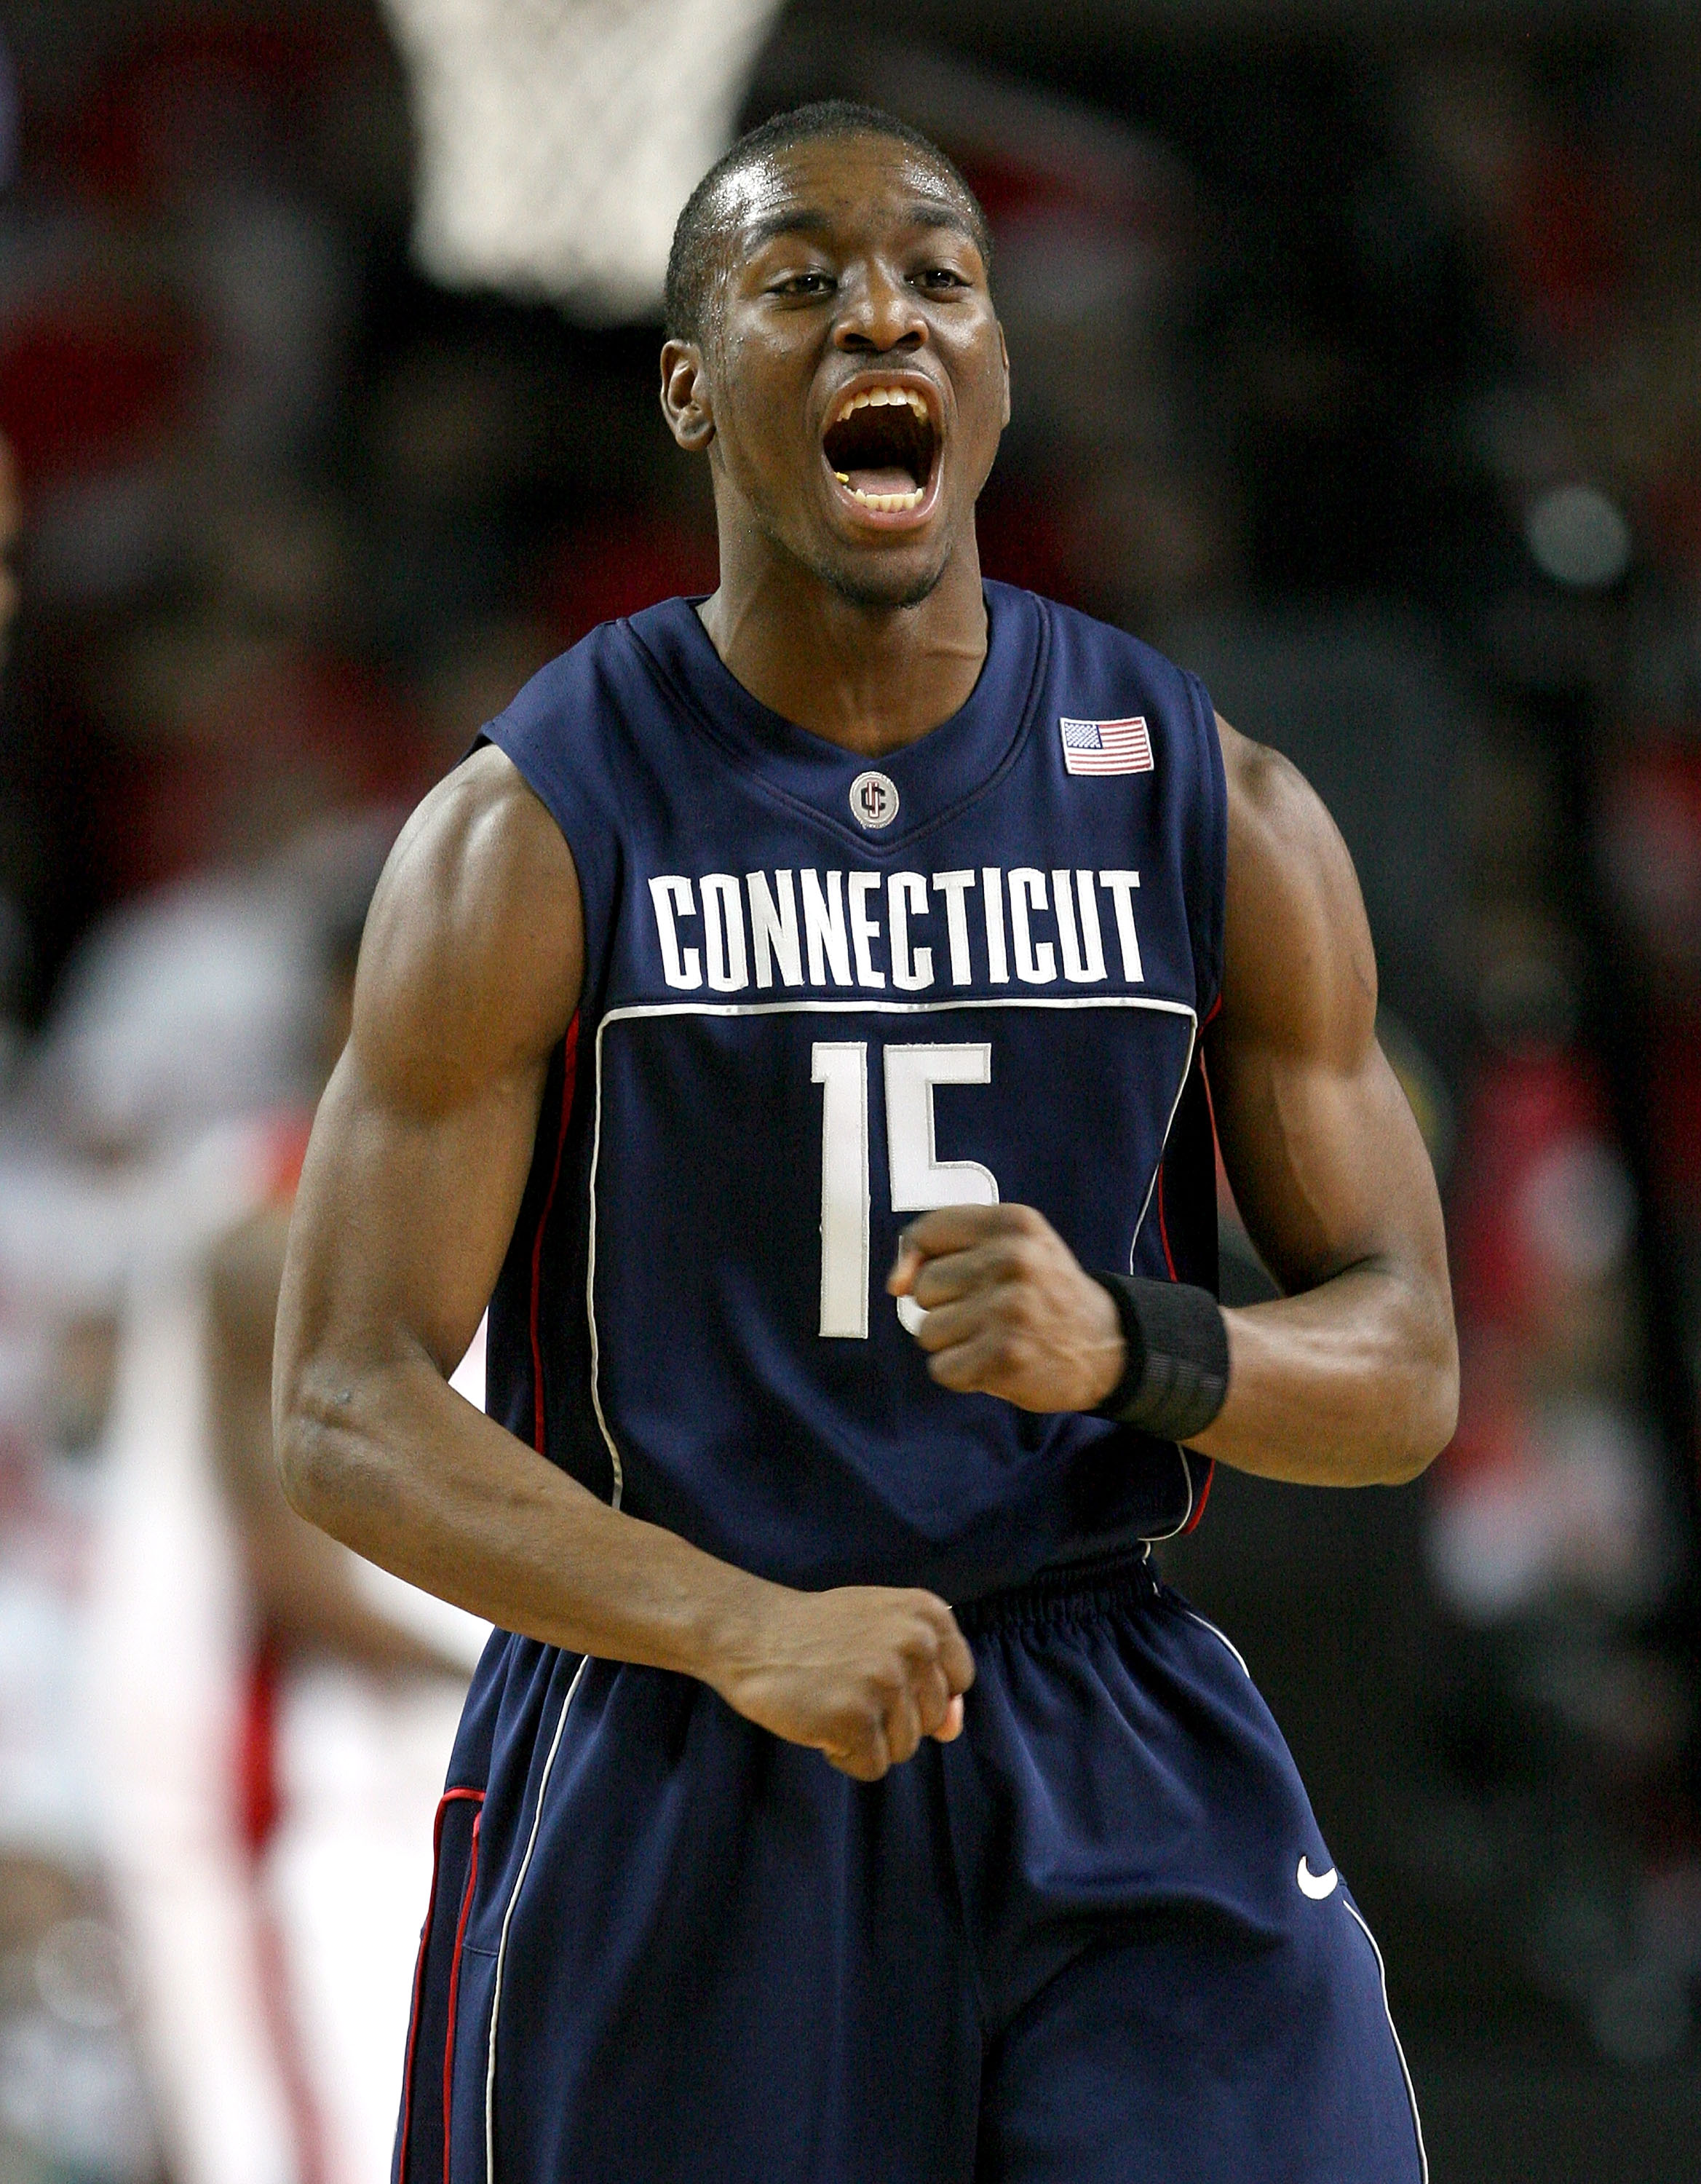 LOUISVILLE, KY - FEBRUARY 02:  Kemba Walker #15 of the Connecticut Huskies celebrates during the Big East Conference game against the Louisville Cardinals on February 2, 2009 at Freedom Hall in Louisville, Kentucky.  (Photo by Andy Lyons/Getty Images)